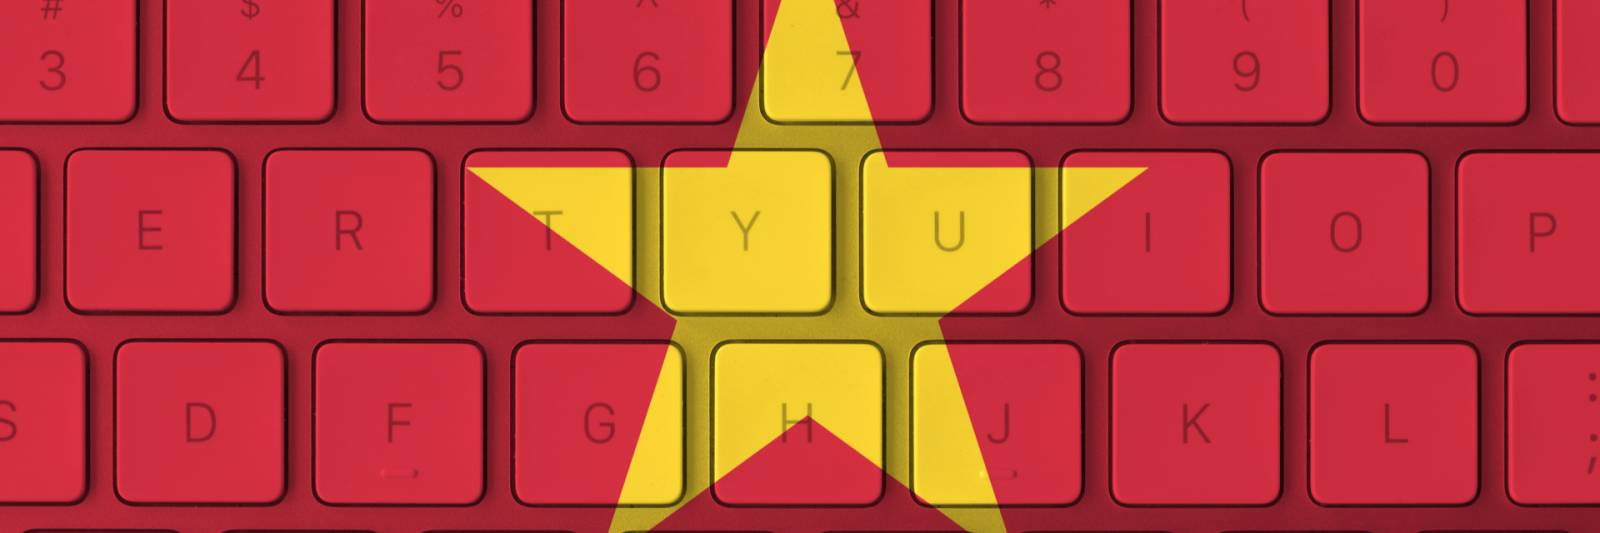 Facebook Links Notorious Oceanlotus Cyber Gang With Vietnamese It Company